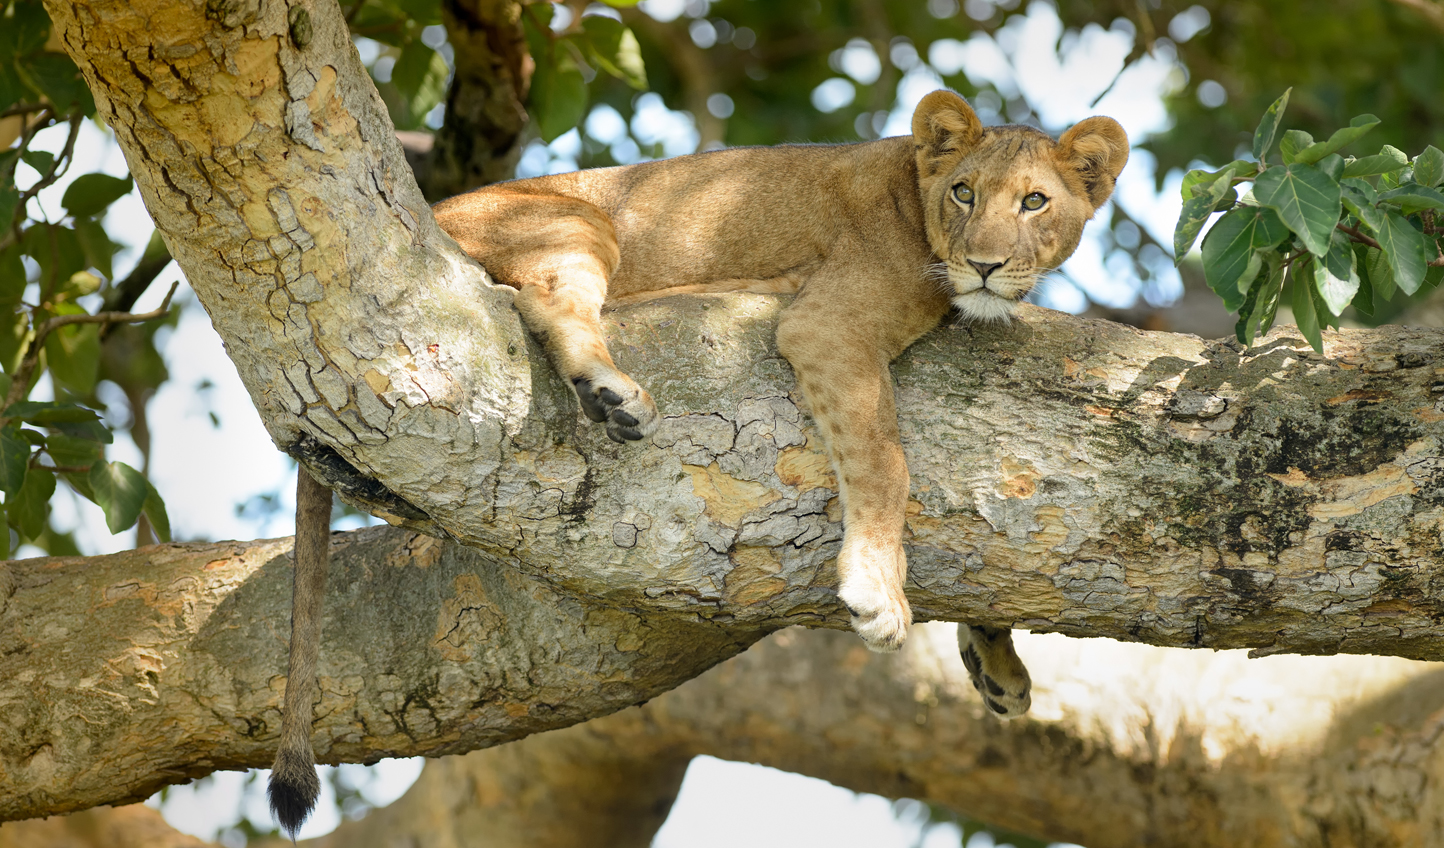 Hang out with lions in Queen Elizabeth National Park